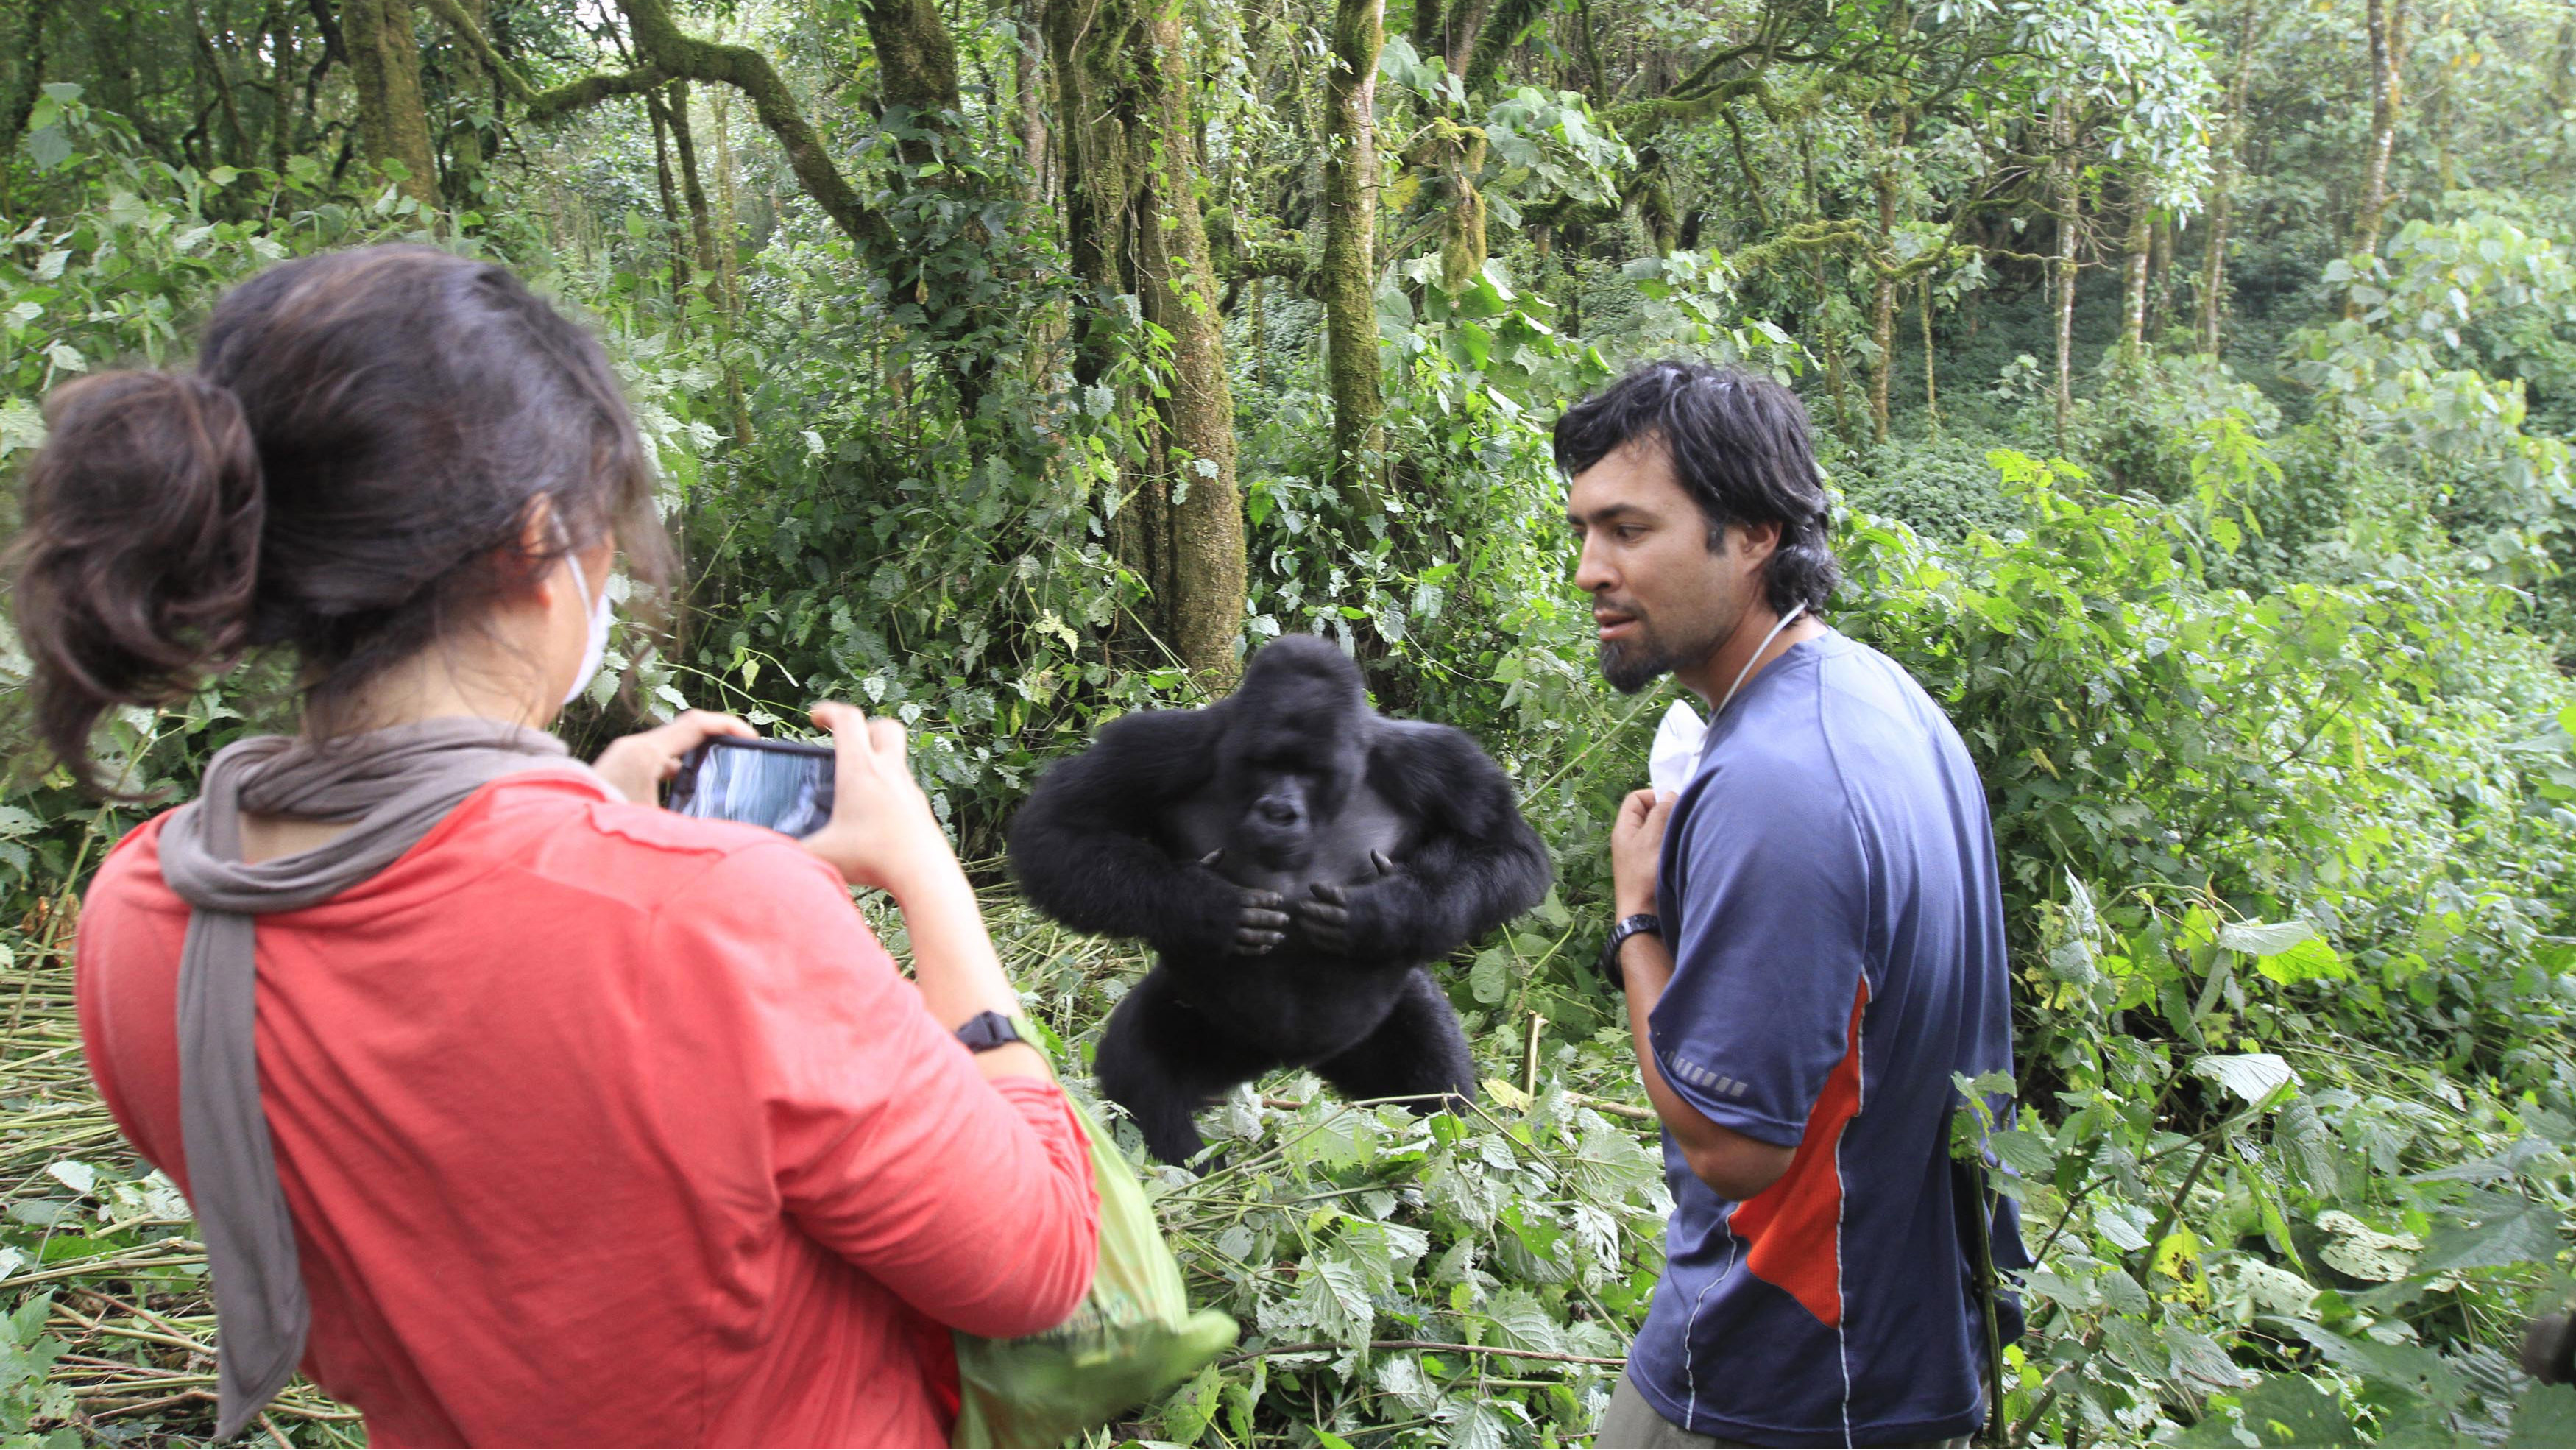 Tourists take pictures of a mountain gorilla in Virunga national park in the Democratic Republic of Congo, near the border town of Bunagana October 21, 2012. The M23 Movement, the newly formed political wing of former M23 rebels, opened Virunga national park to tourists to allow the tracking of the rare mountain gorillas.